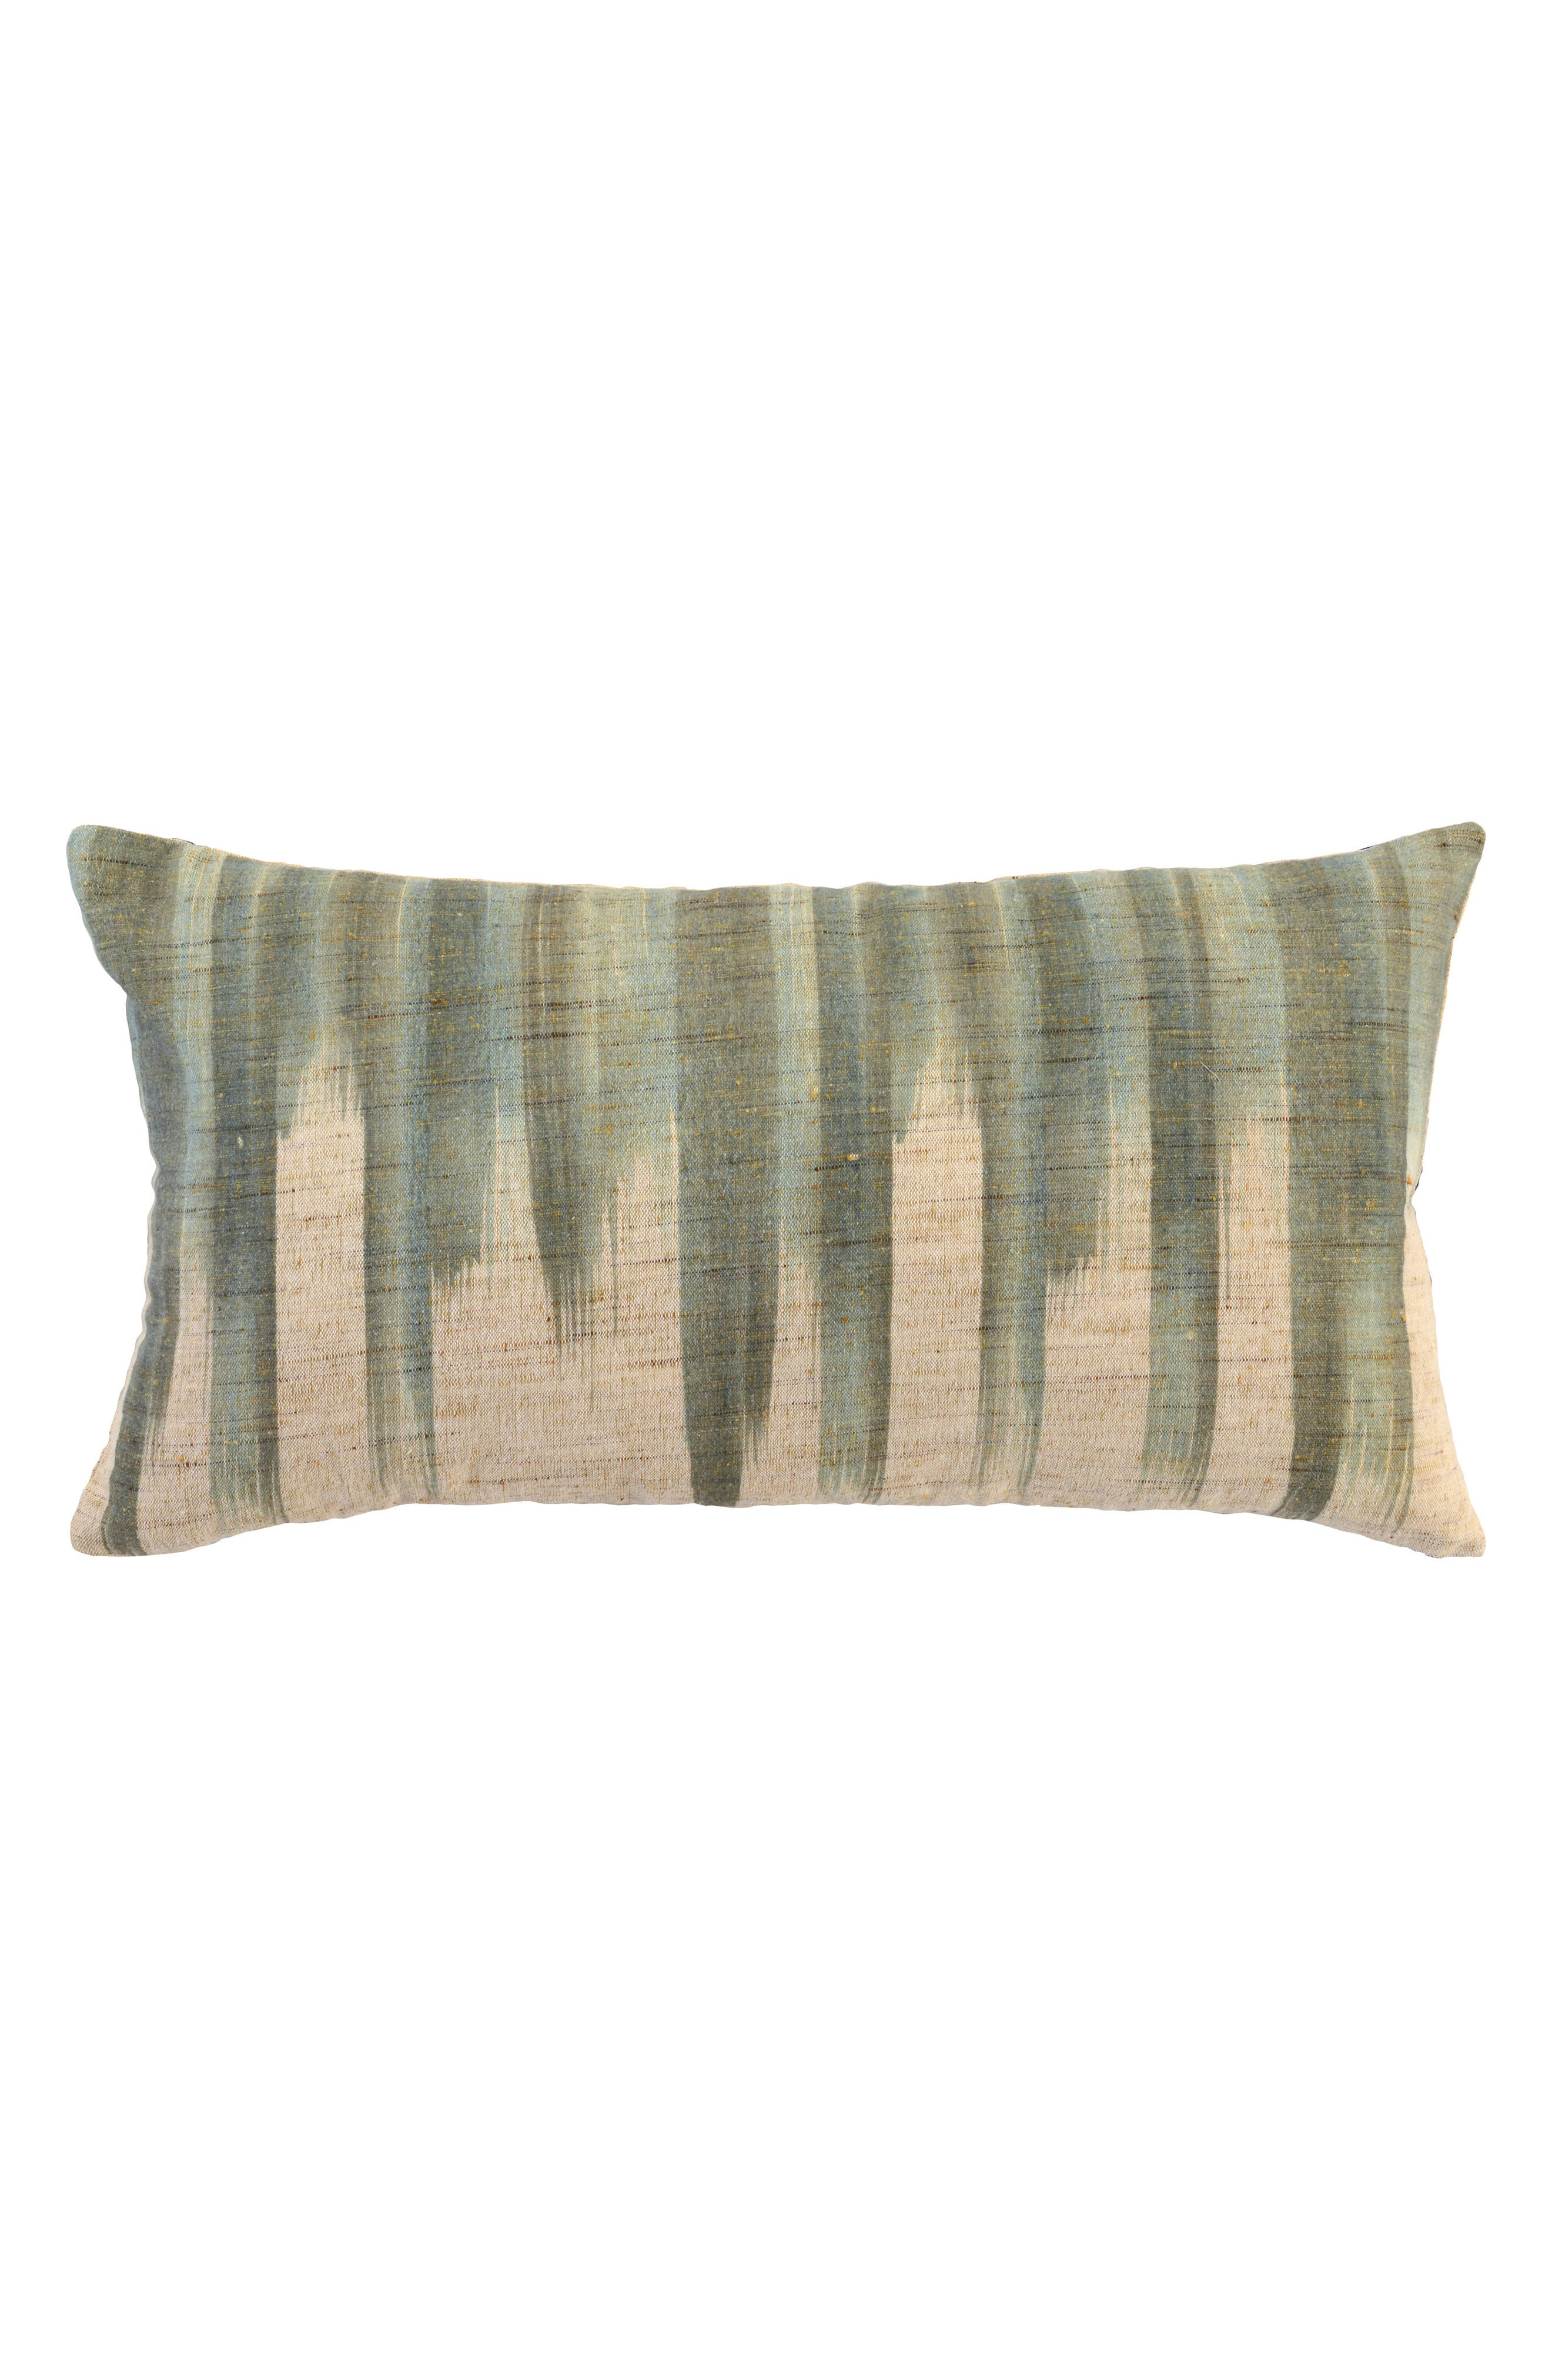 VILLA HOME COLLECTION Hani Accent Pillow, Main, color, 300